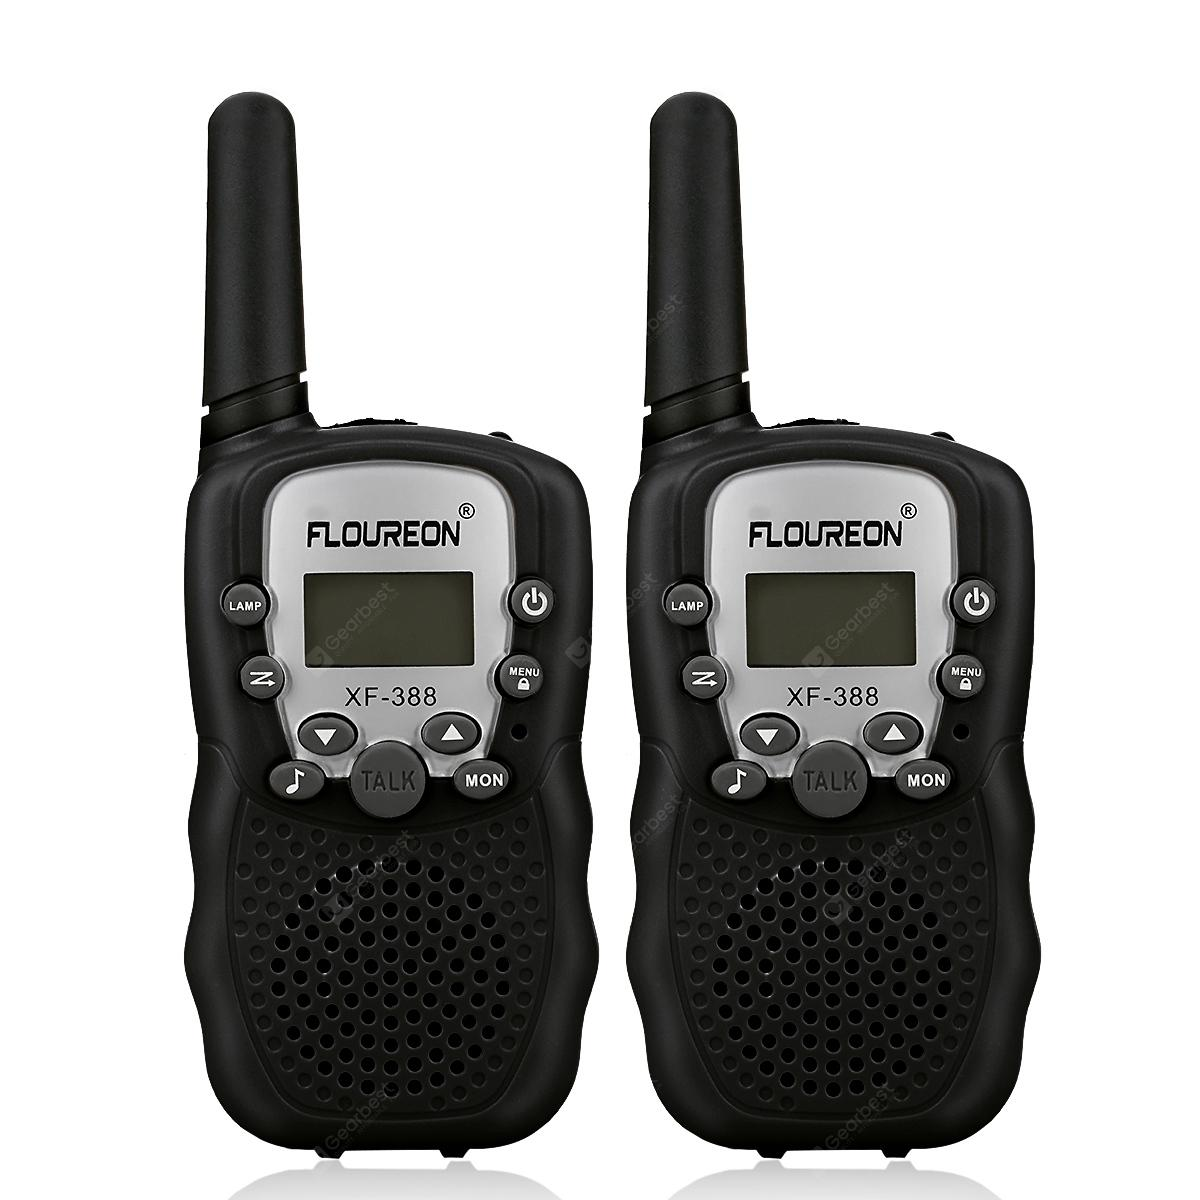 FLOUREON 8 Channel Walkie Talkies UHF400-470MHz two-Way Radio 3 Km Range Black EU/UK - BLACK